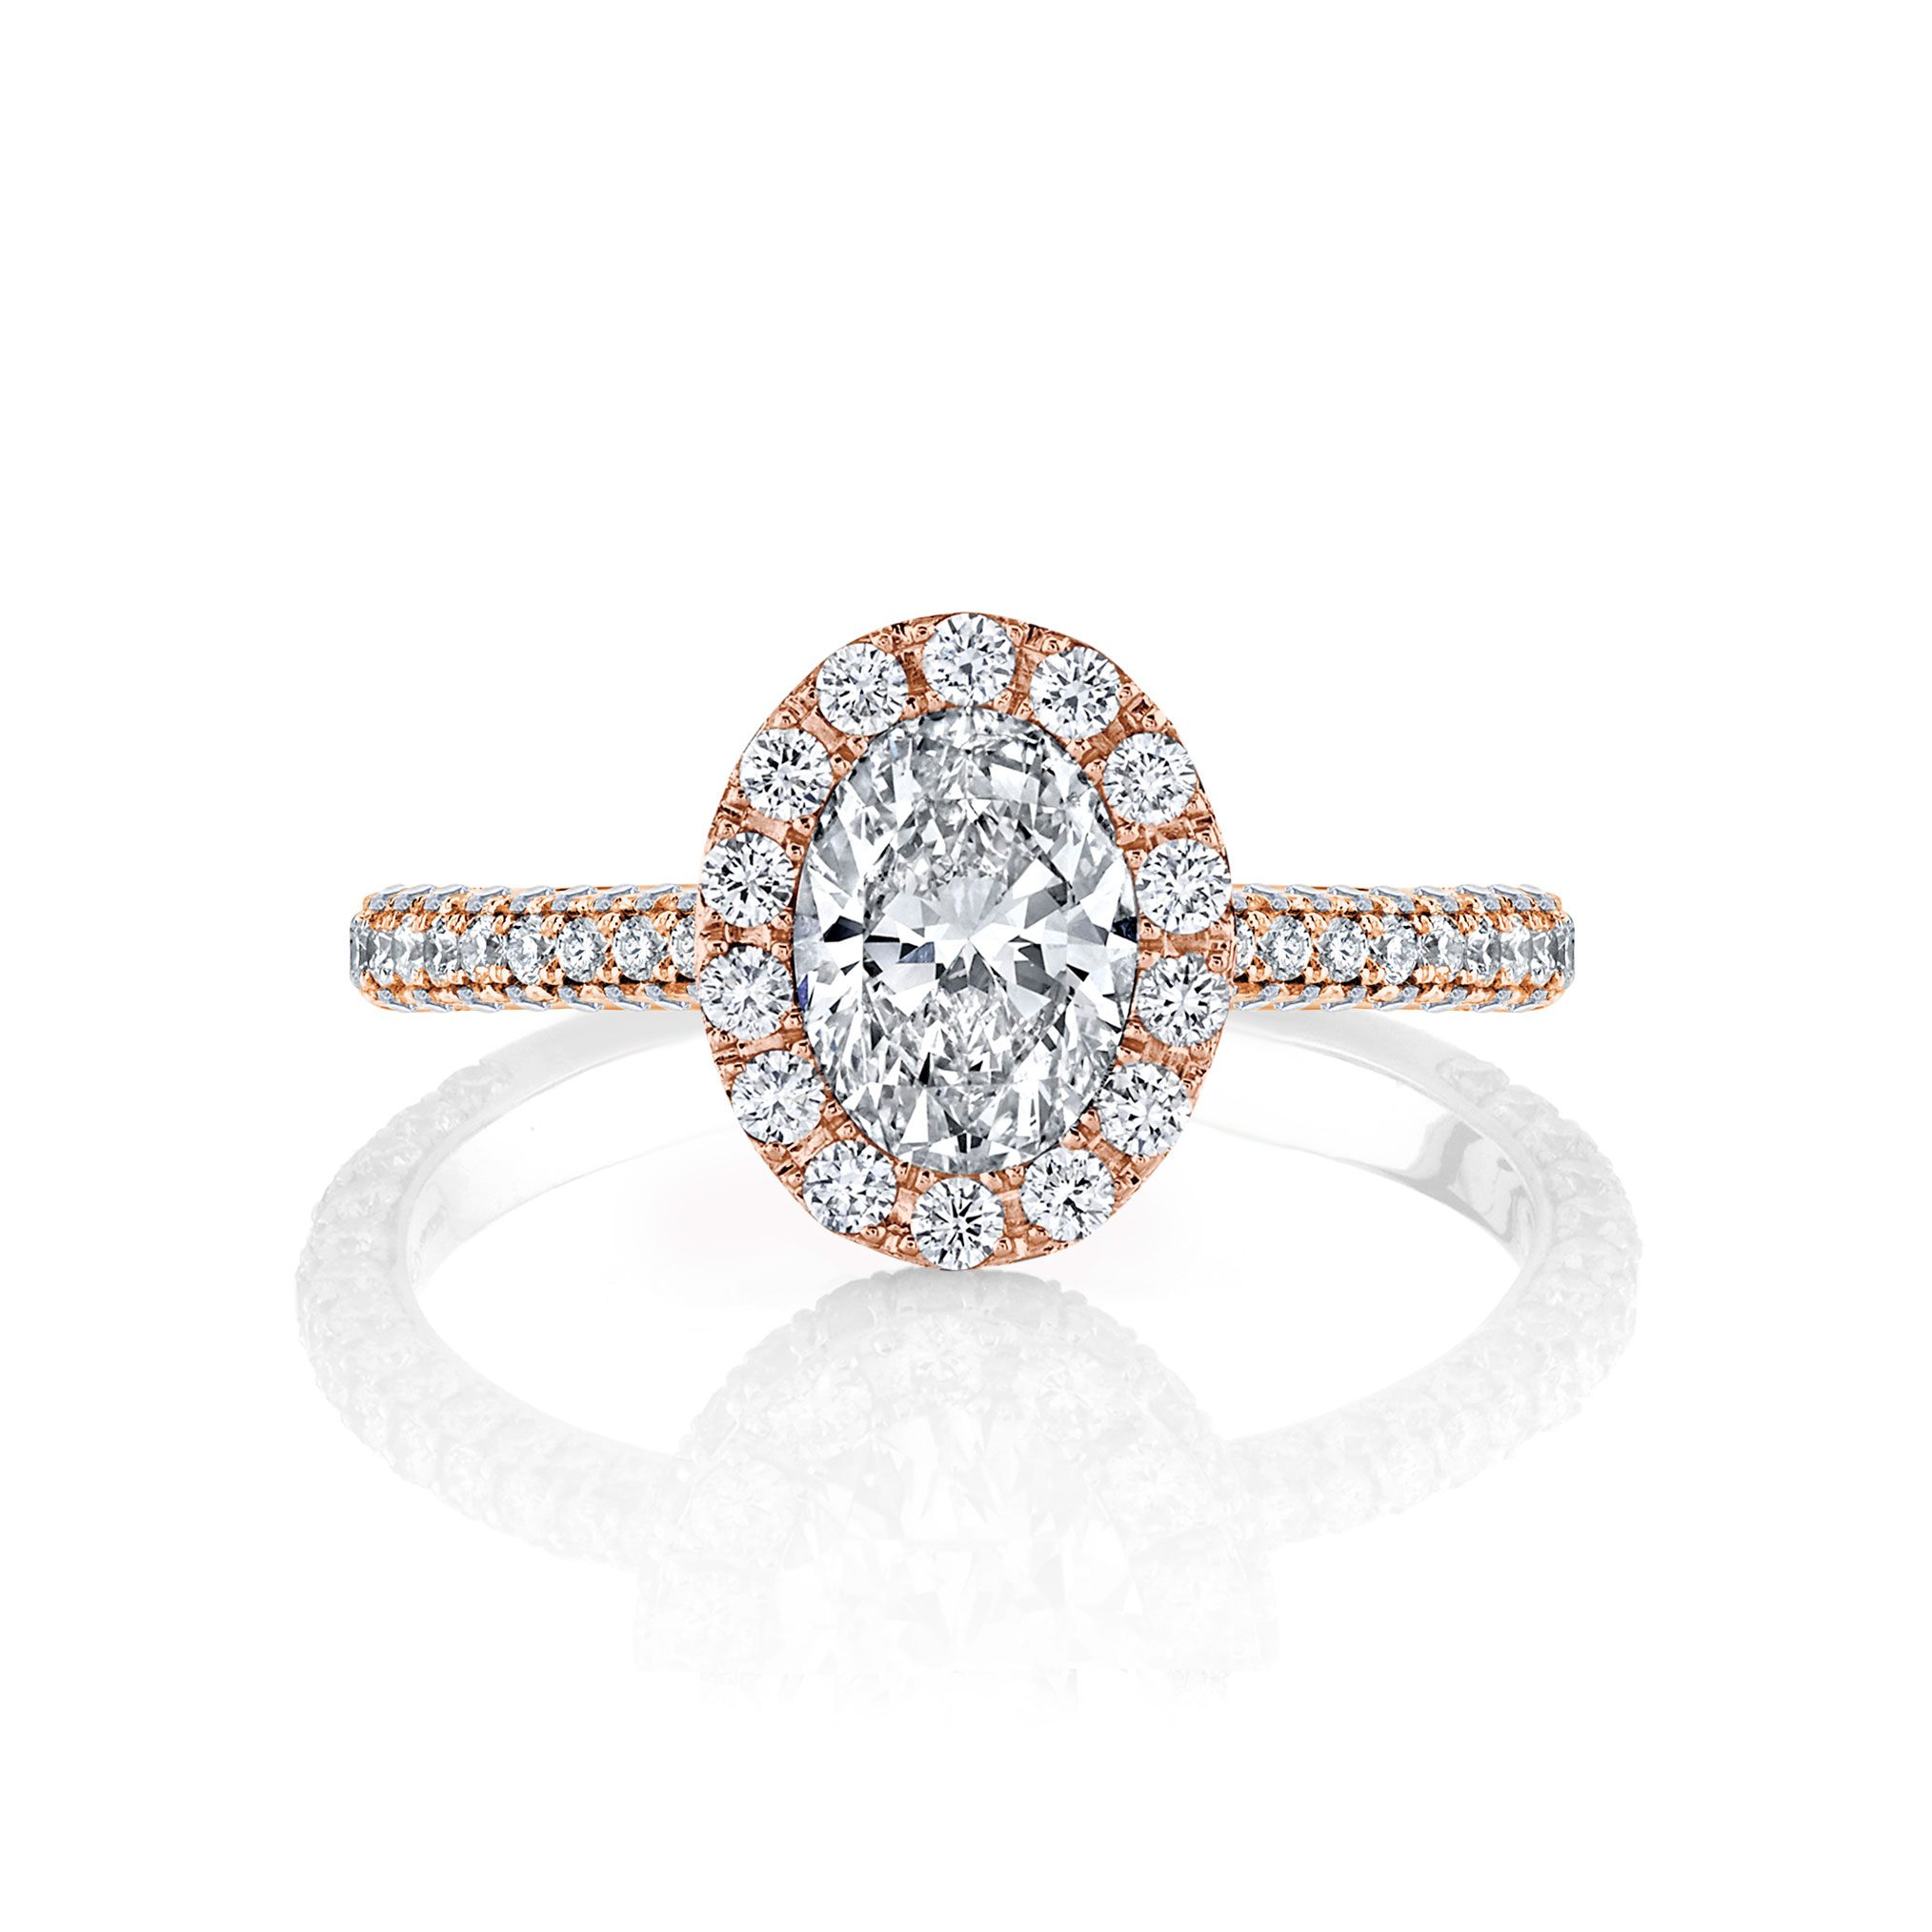 Jacqueline Oval Seamless Halo® Engagement Ring with diamond pavé in 18k Rose Gold Front View by Oui by Jean Dousset